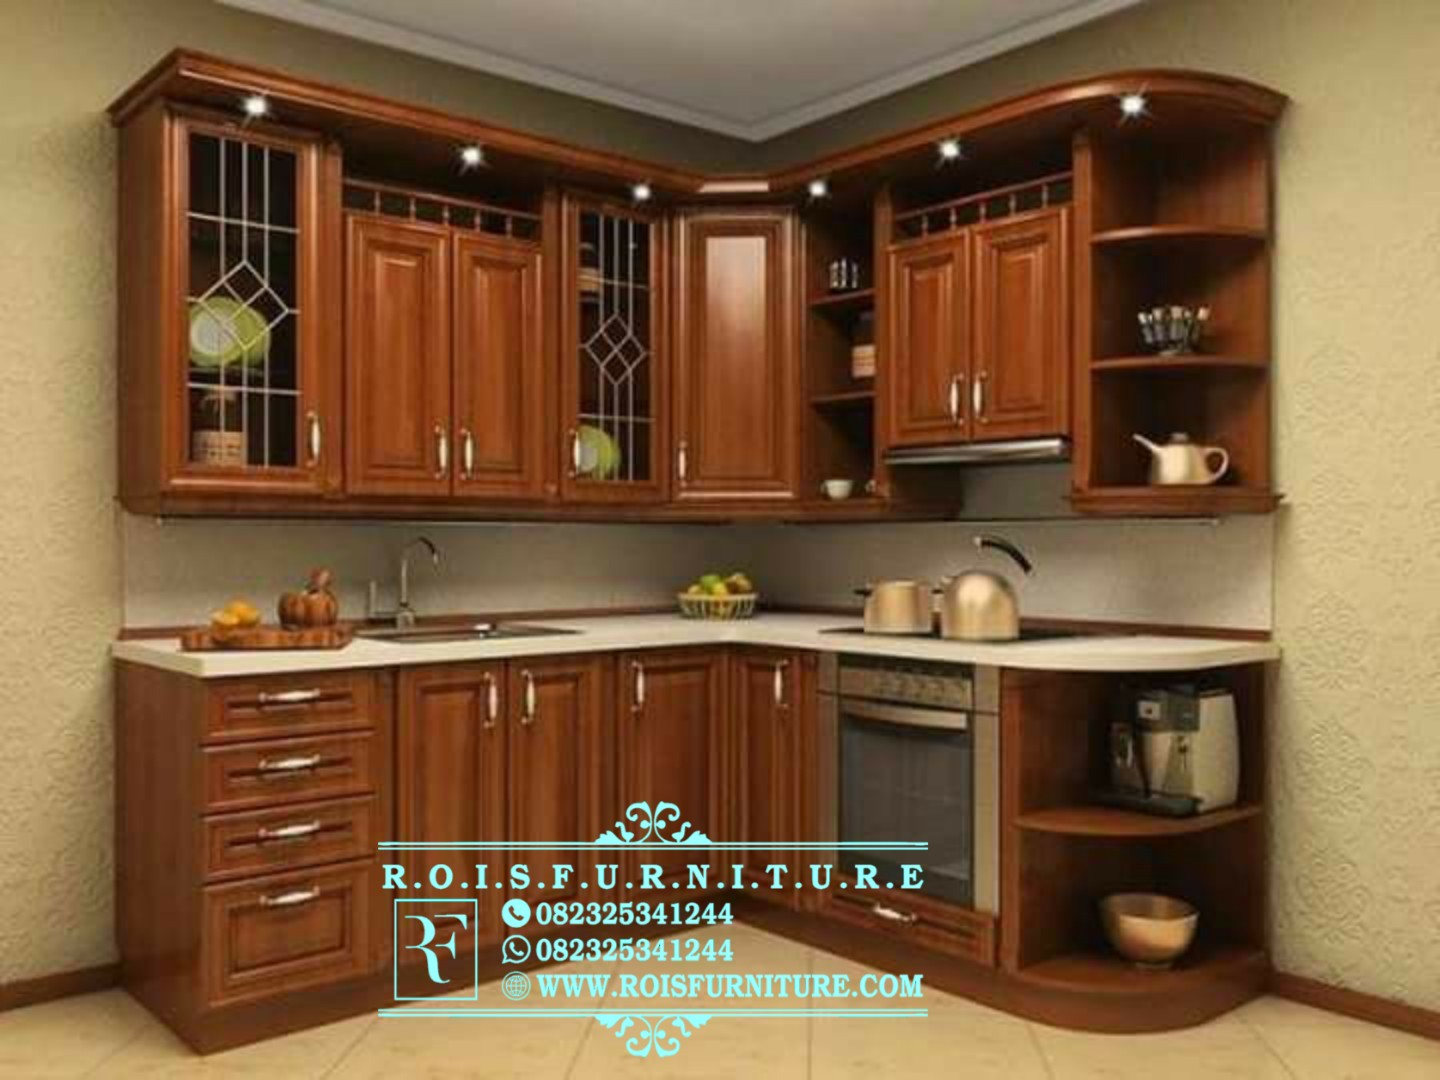 Kitchen Set Model Minimalis Modern Rois Furniture Jepara